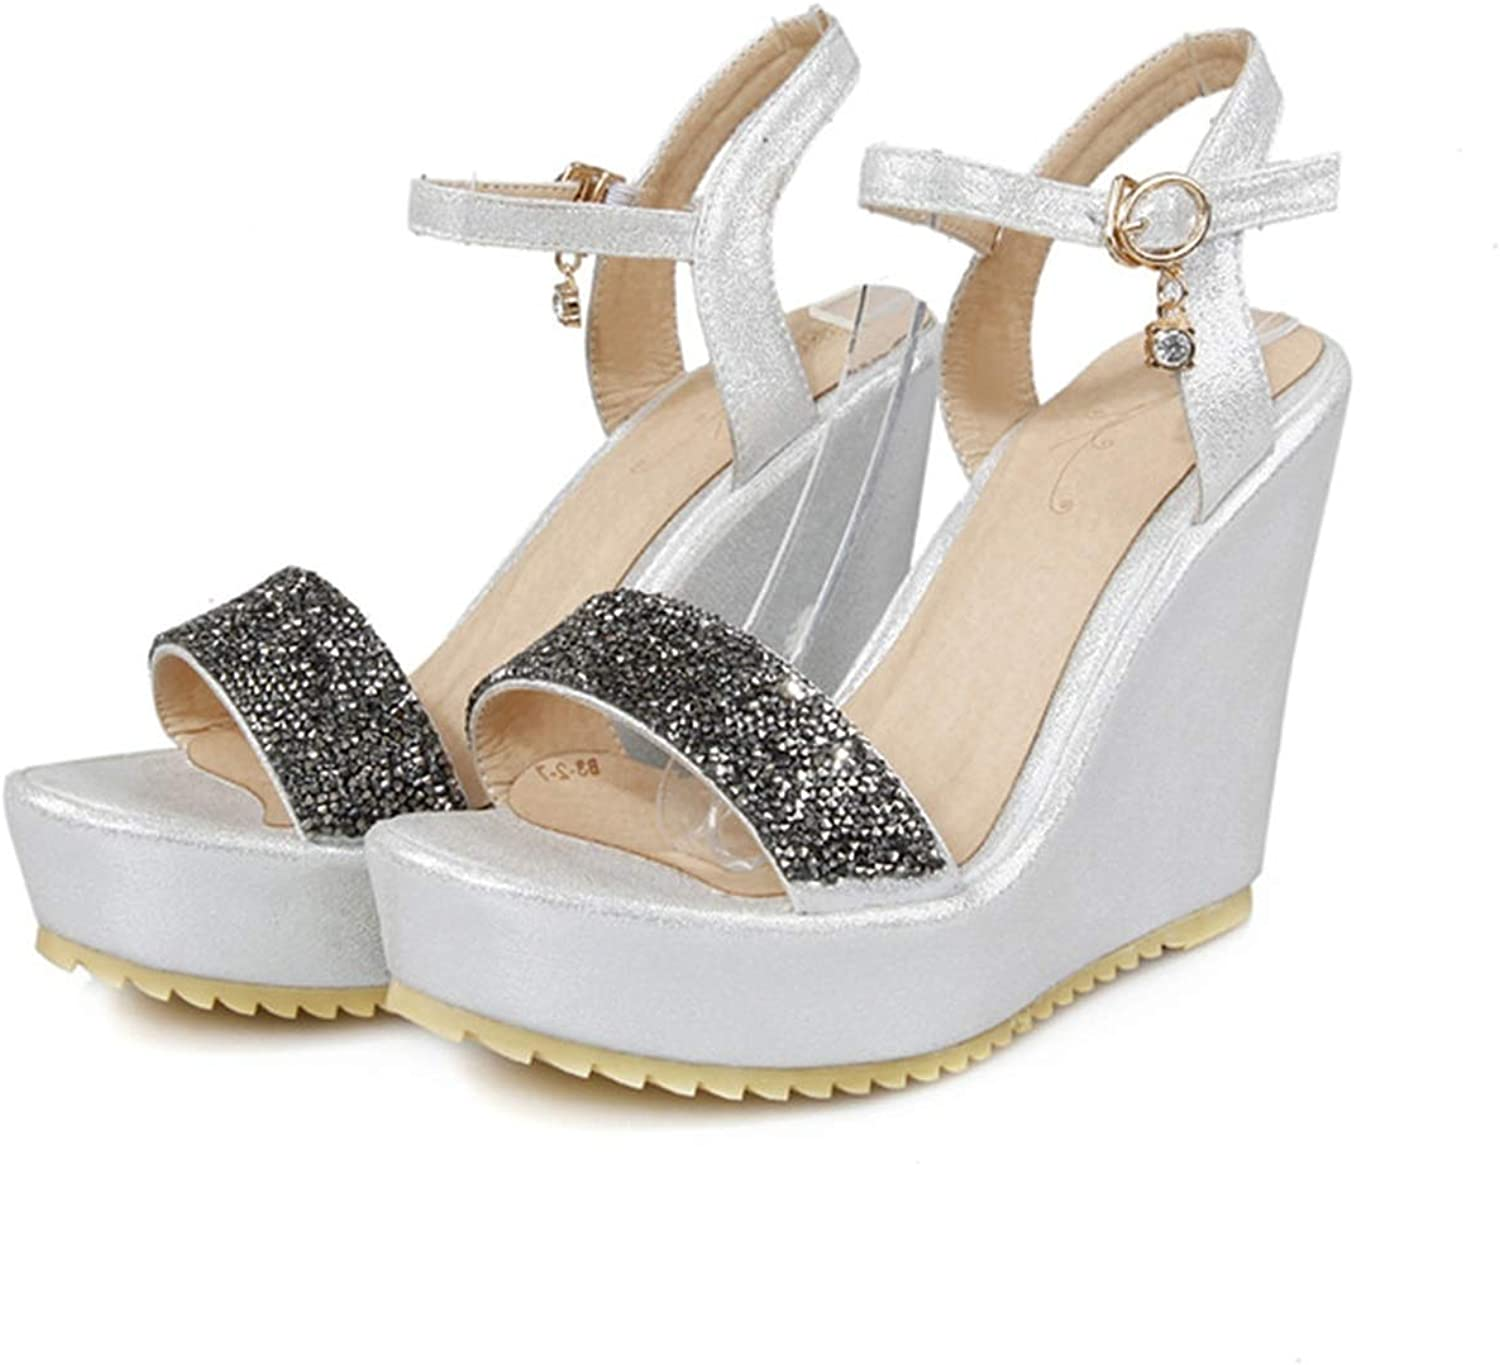 Heart to Hear Sexy Sandals Women Party Wedding shoes high Heels Round Toe,